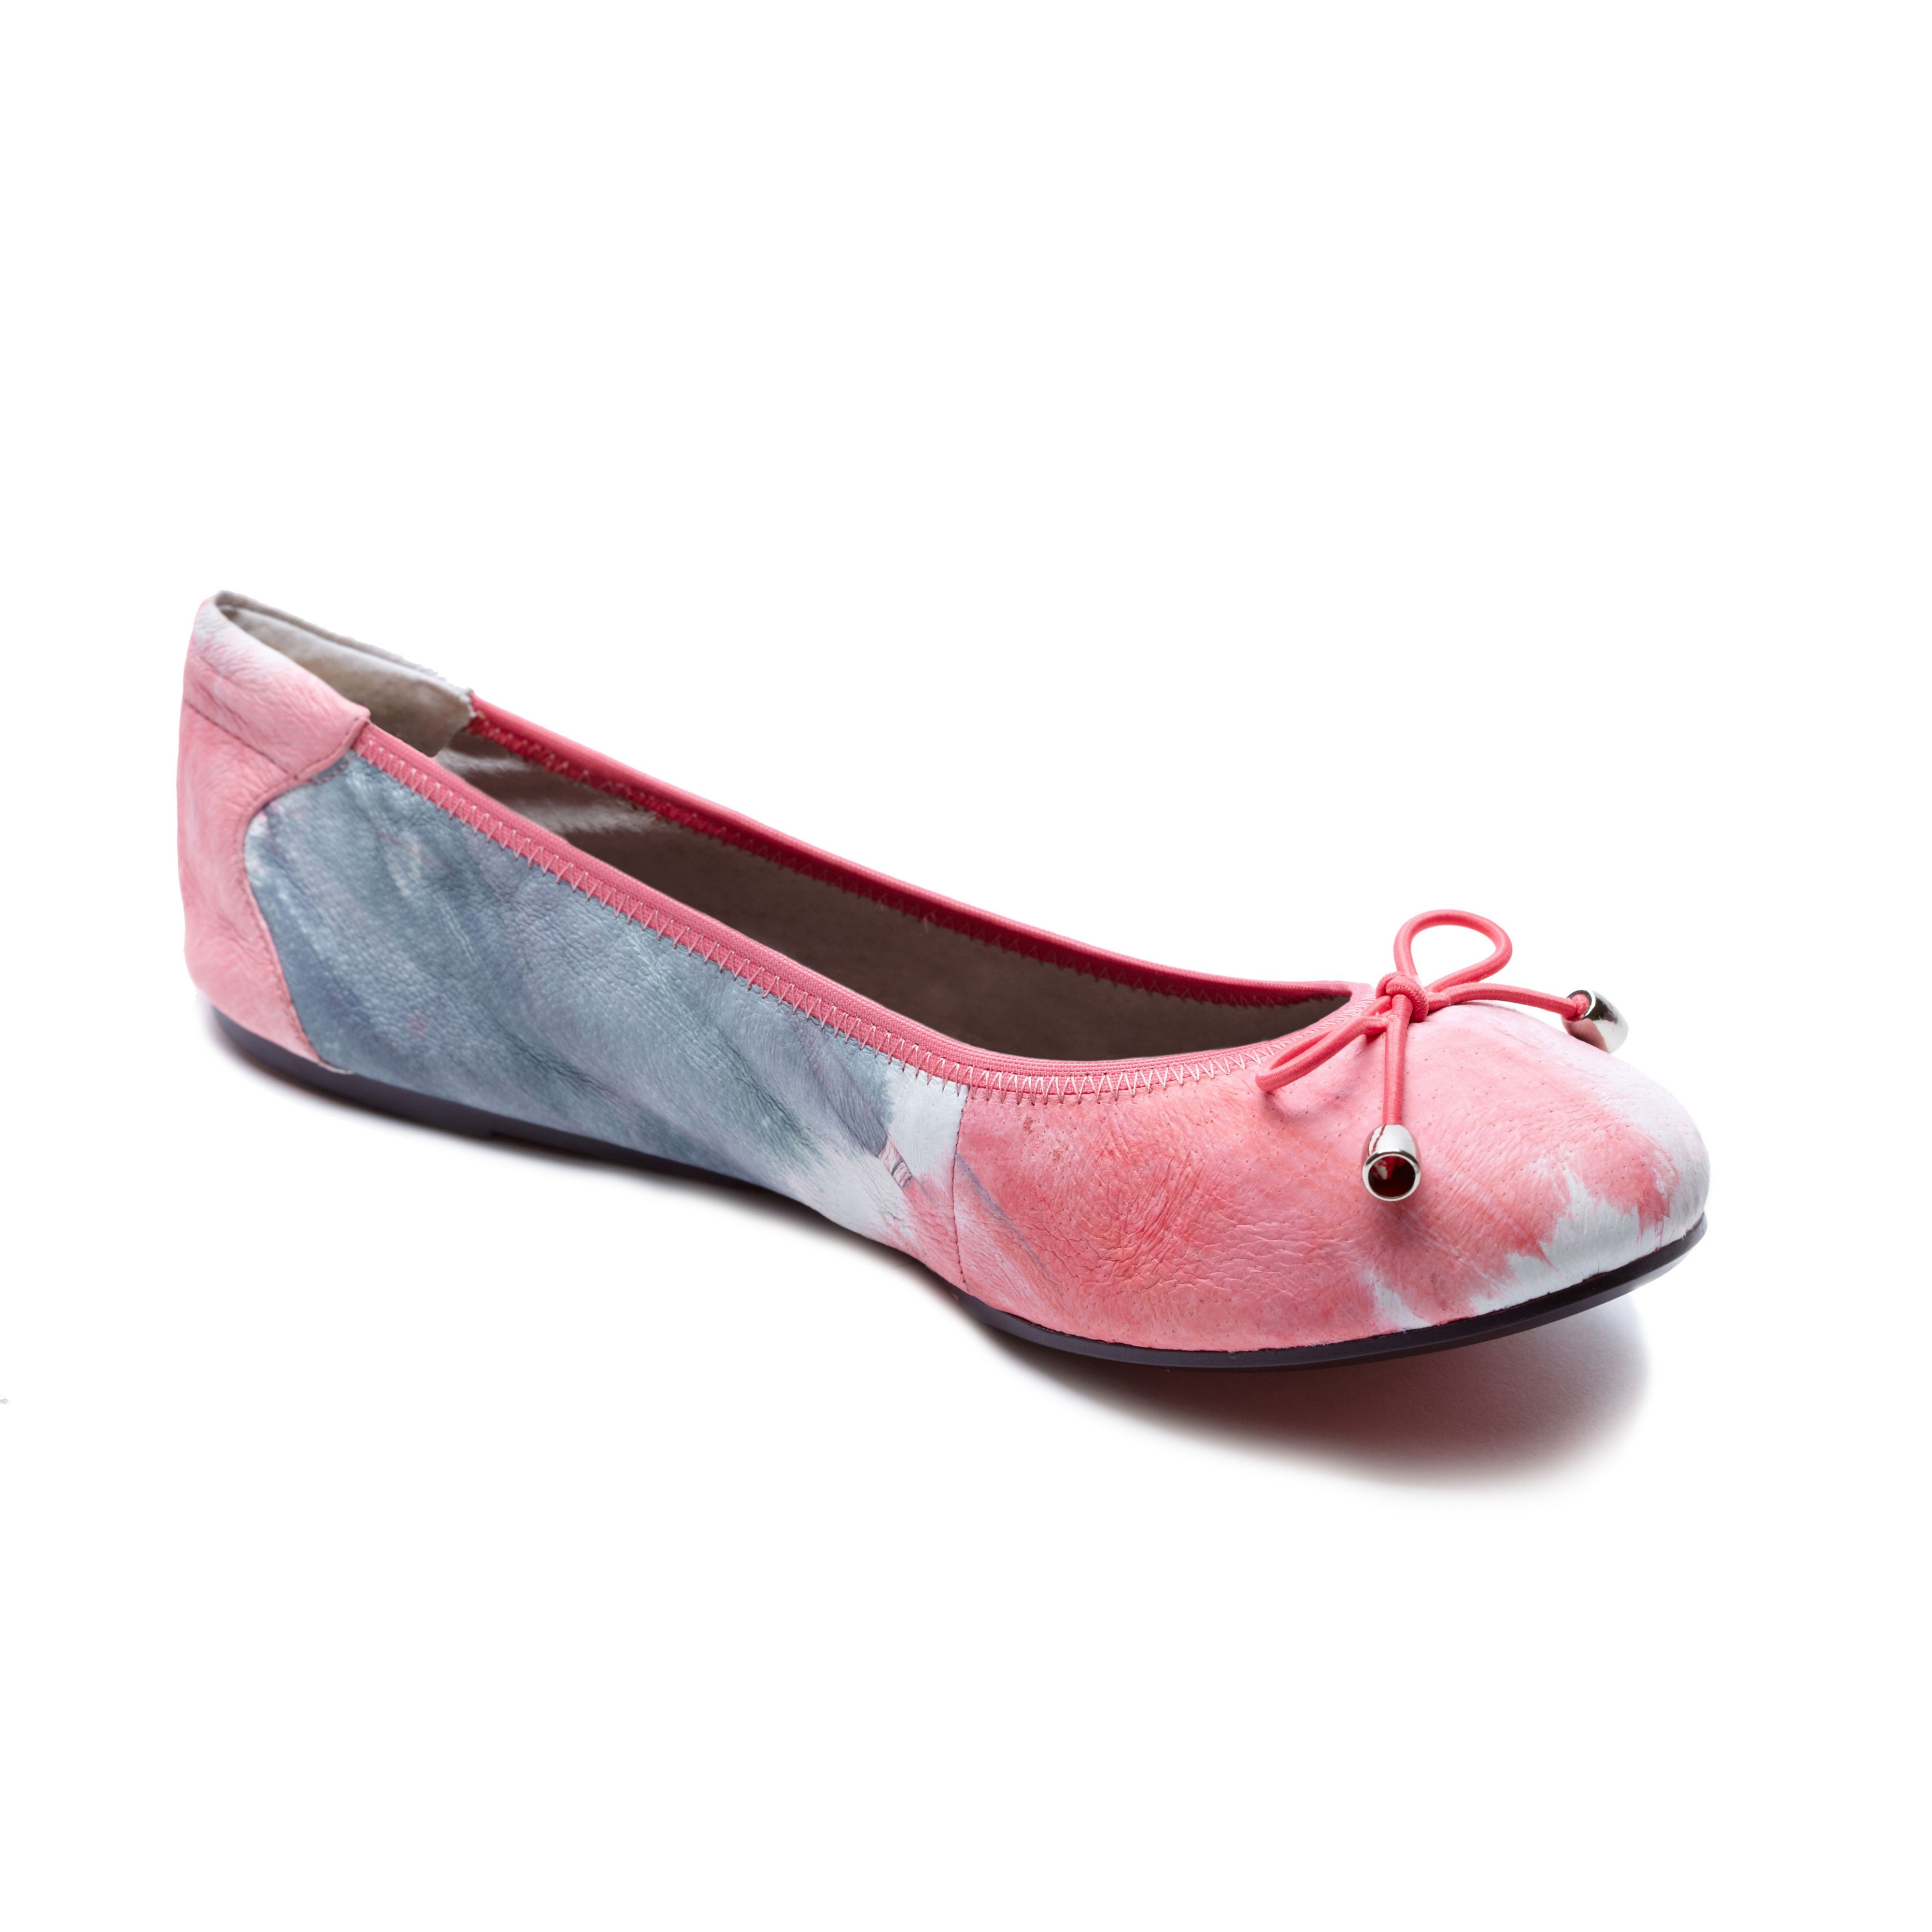 Greenwich dip-dye pink leather foldable ballerina